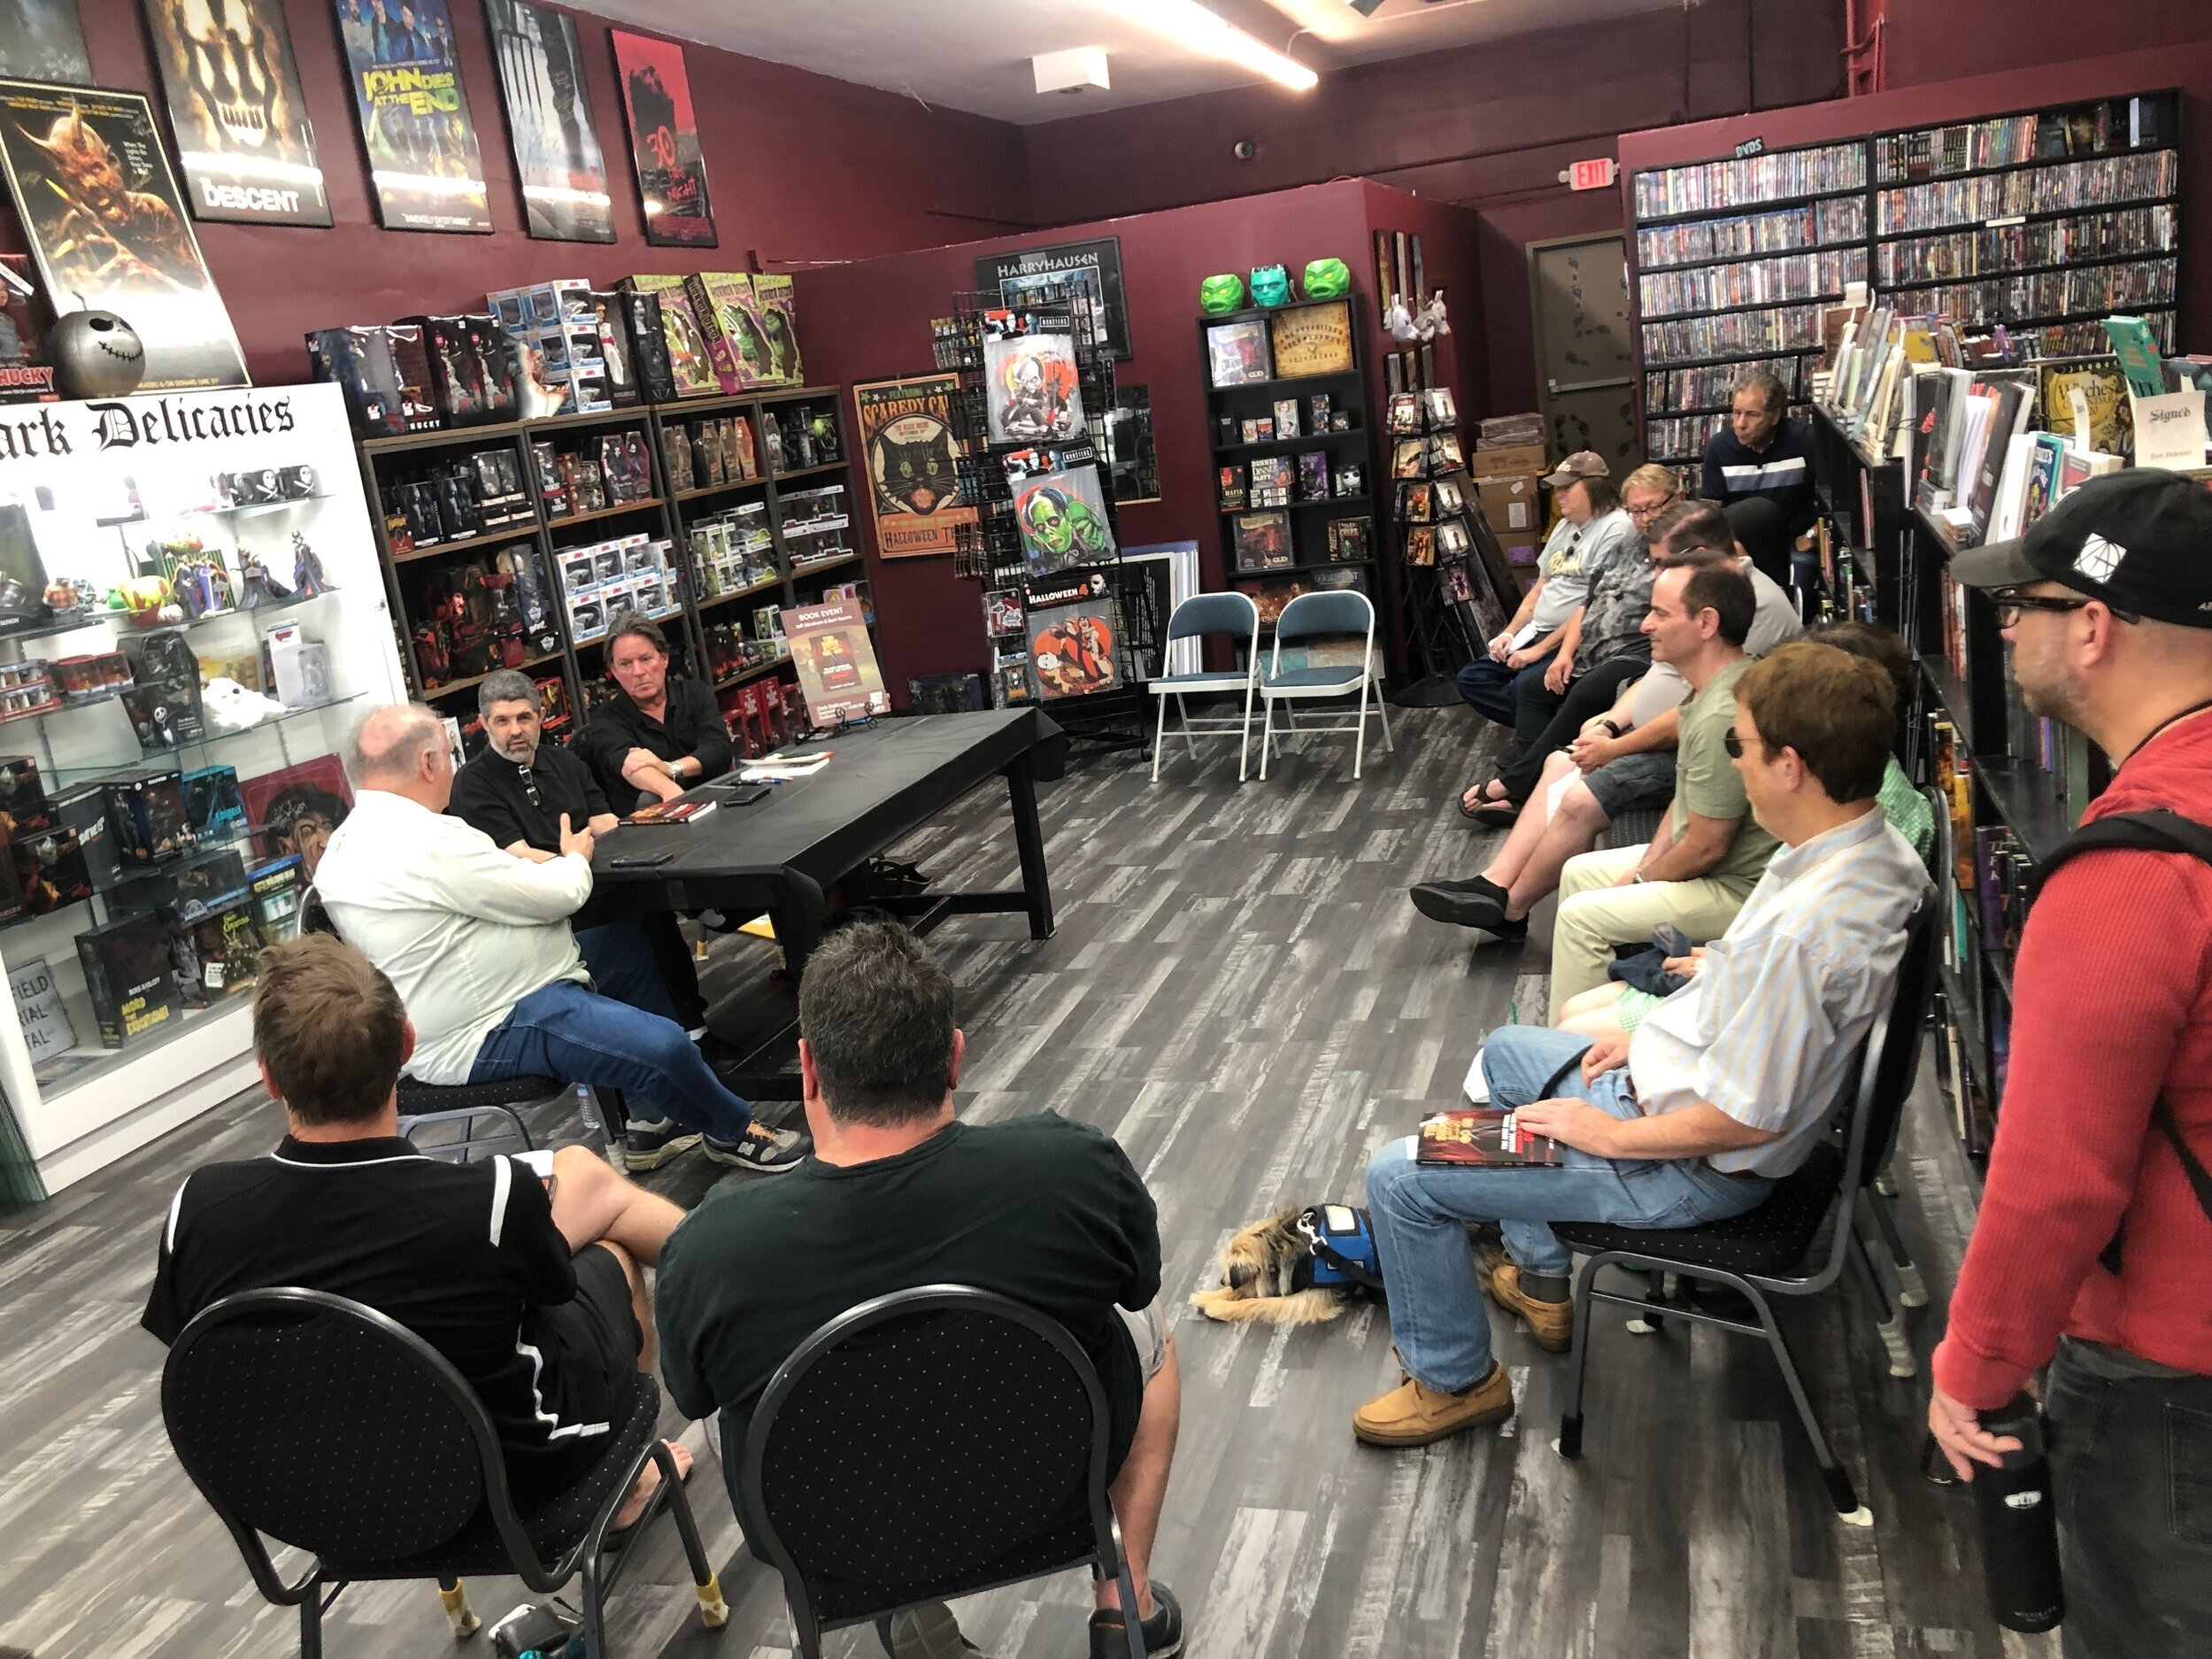 WRITER, PRODUCER, SHOW BUSINESS HISTORIAN AND COMIC BOOK LEGEND MARK EVANIER WAS SPECIAL GUEST MODERATOR FOR THE WELL-ATTENDED DARK DELICACIES DISCUSSION. (CLICK PHOTO FOR STORY)